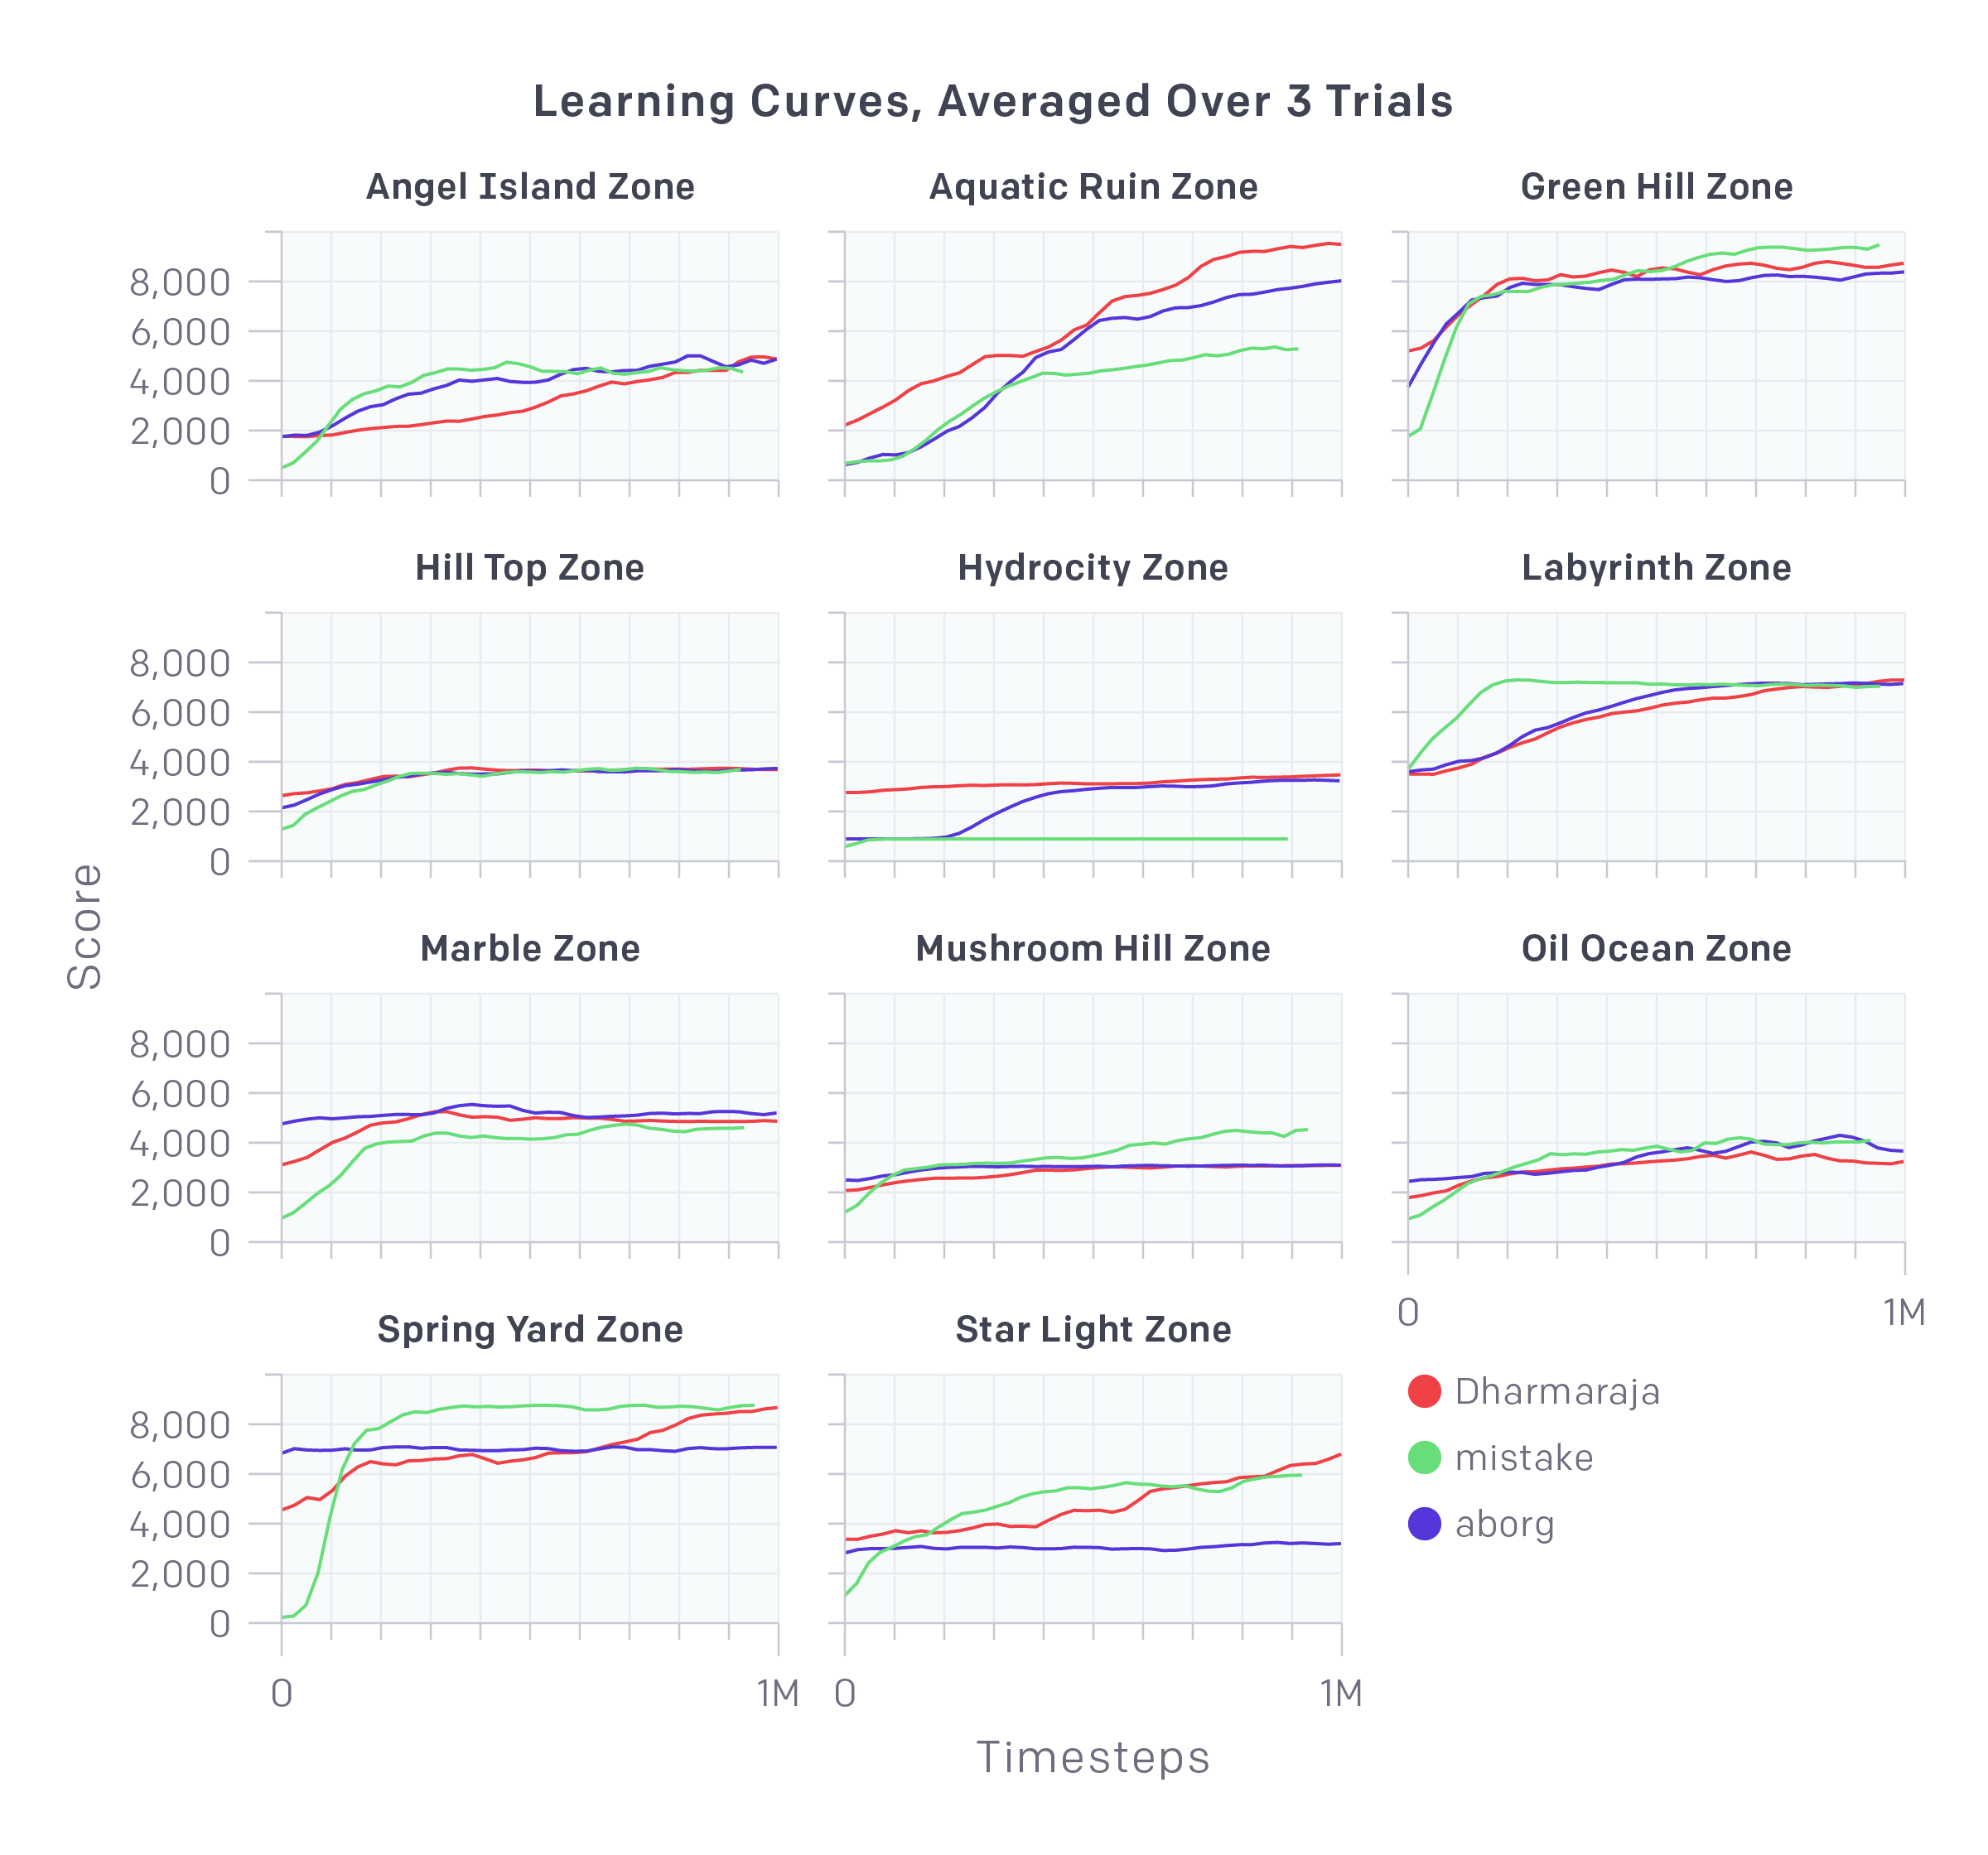 learning-curves-averaged-over-3-trials@2x